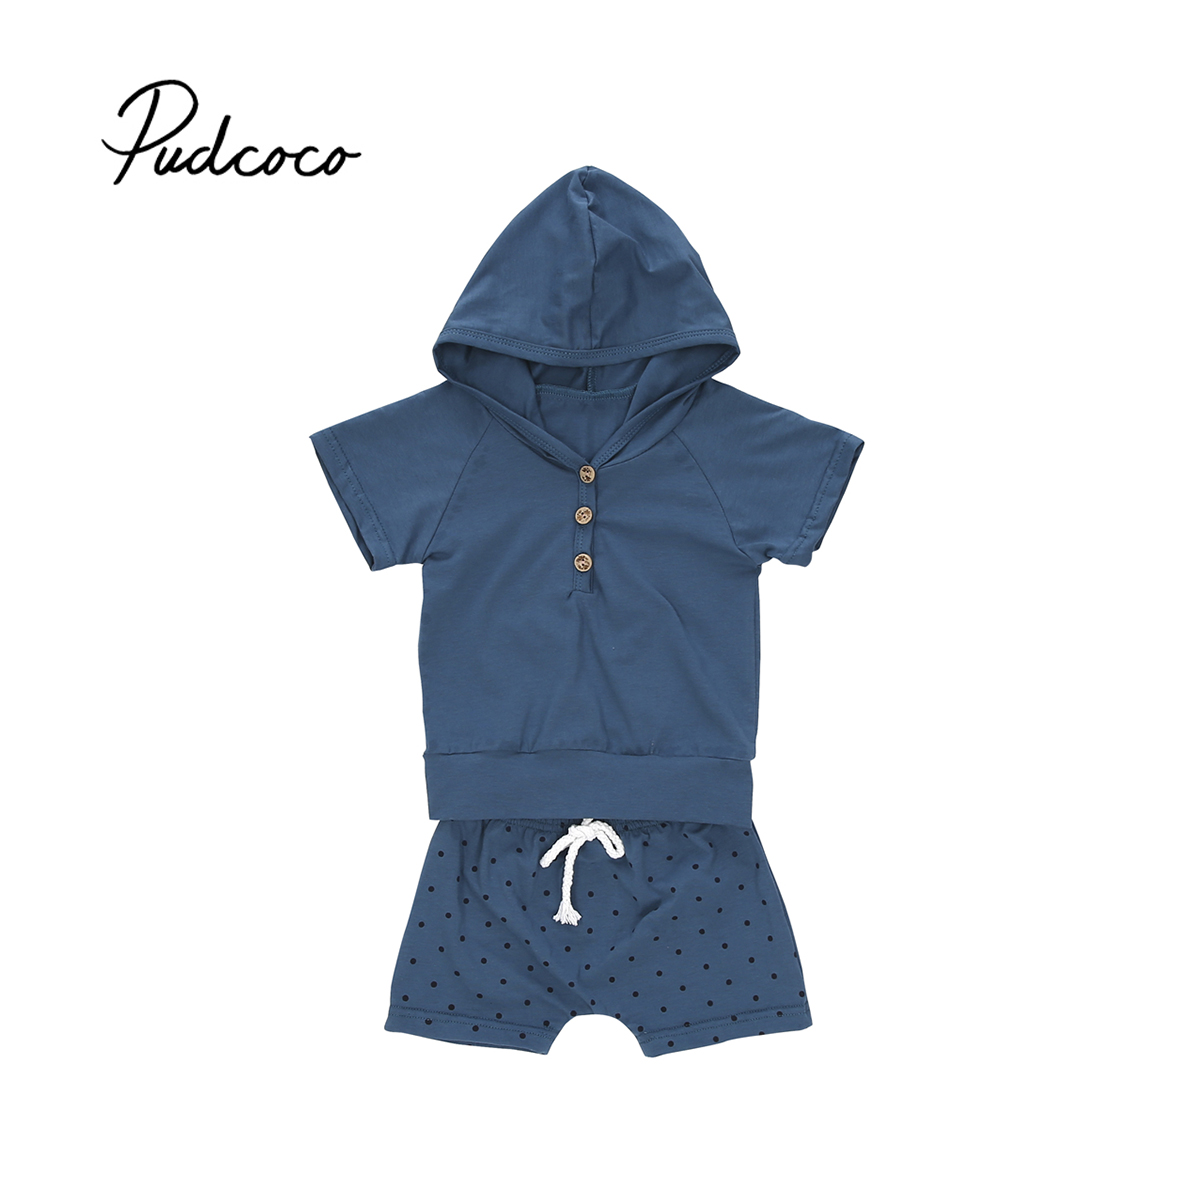 Pudcoco 2Pcs Toddler Baby Boy Girl Infant Summer Hooded T-shirt Tops + Dot Shorts Pants Children Outfits Cothes Set